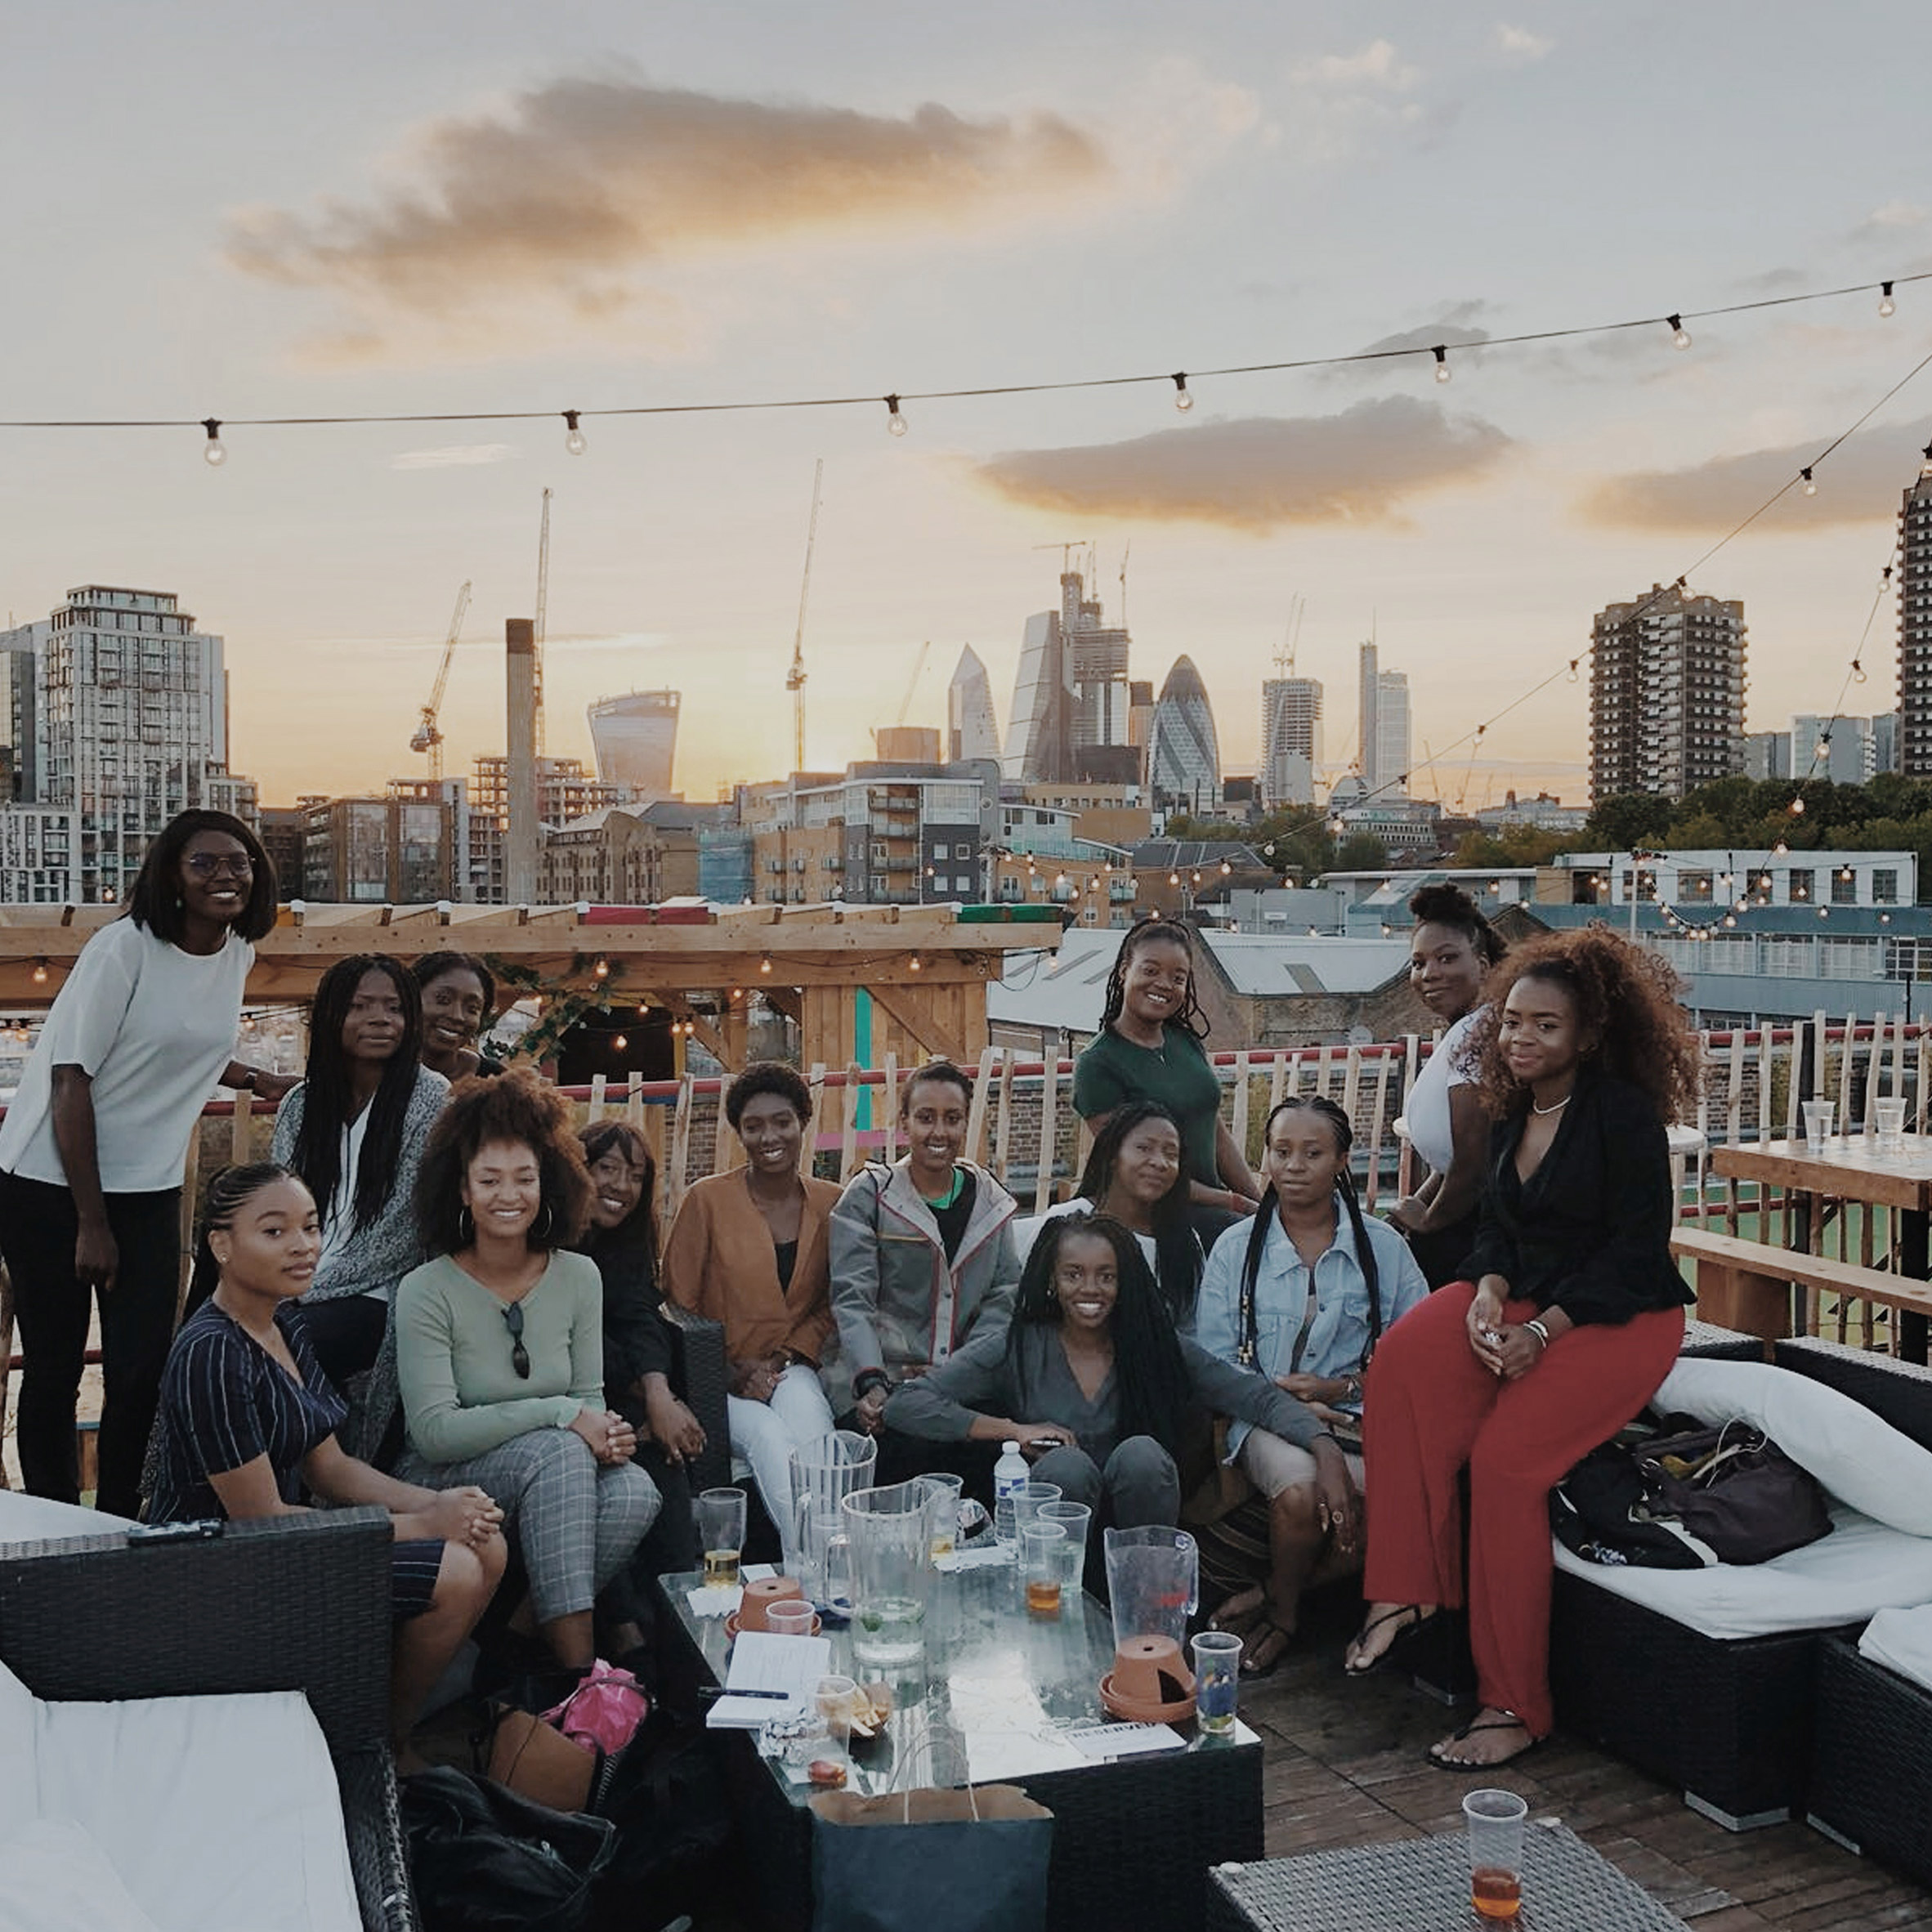 Champions for women in architecture and design: Black Females in Architecture